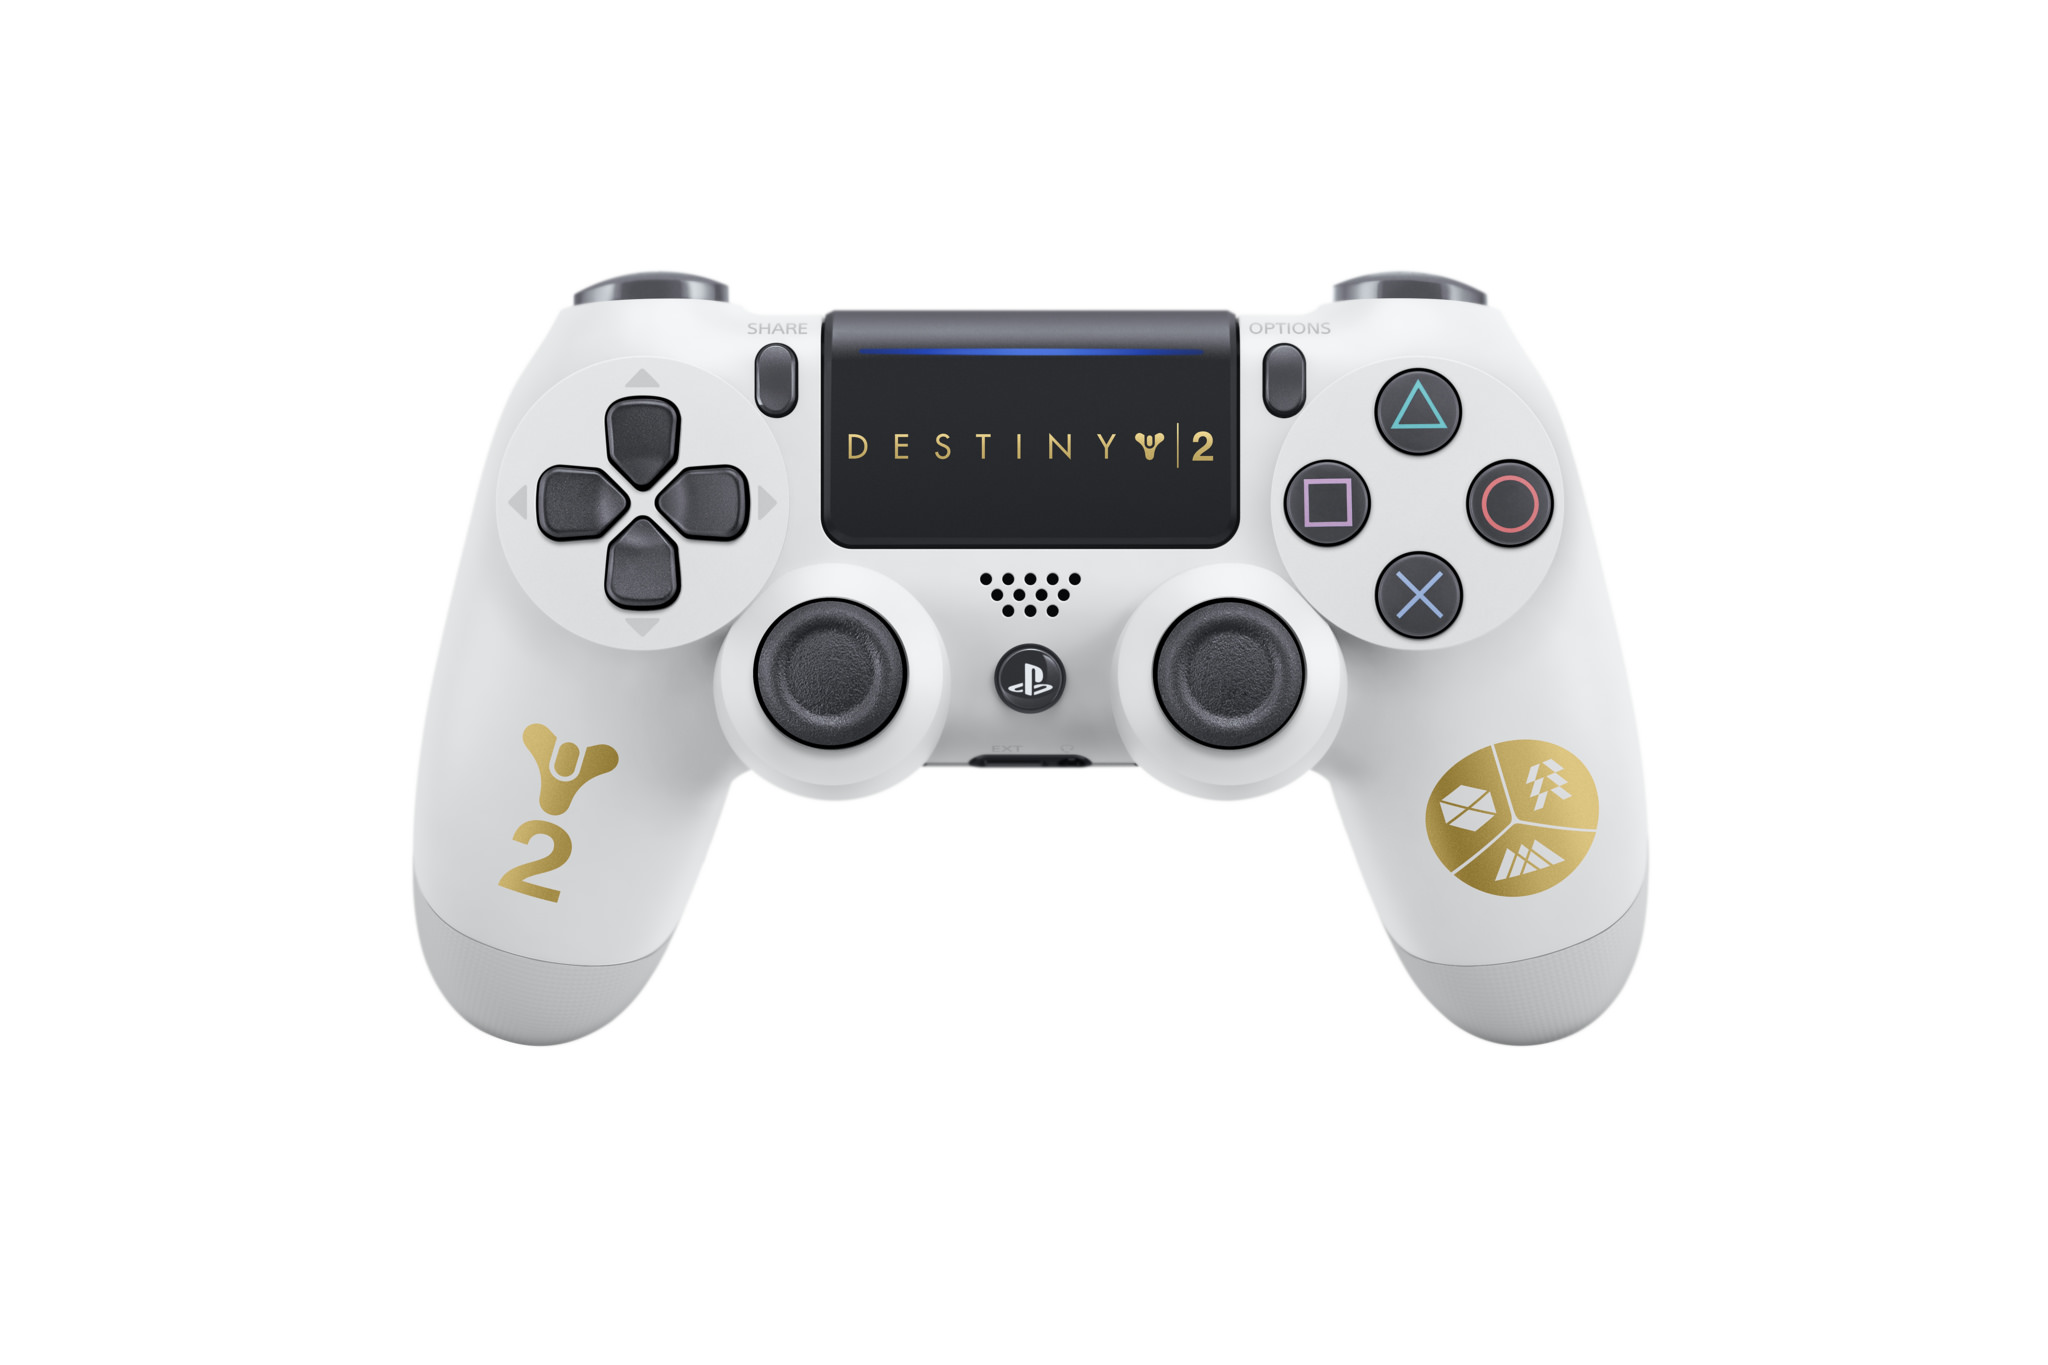 Sony Reveals An Exotic Dualshock 4 And New Bundles For Destiny 2